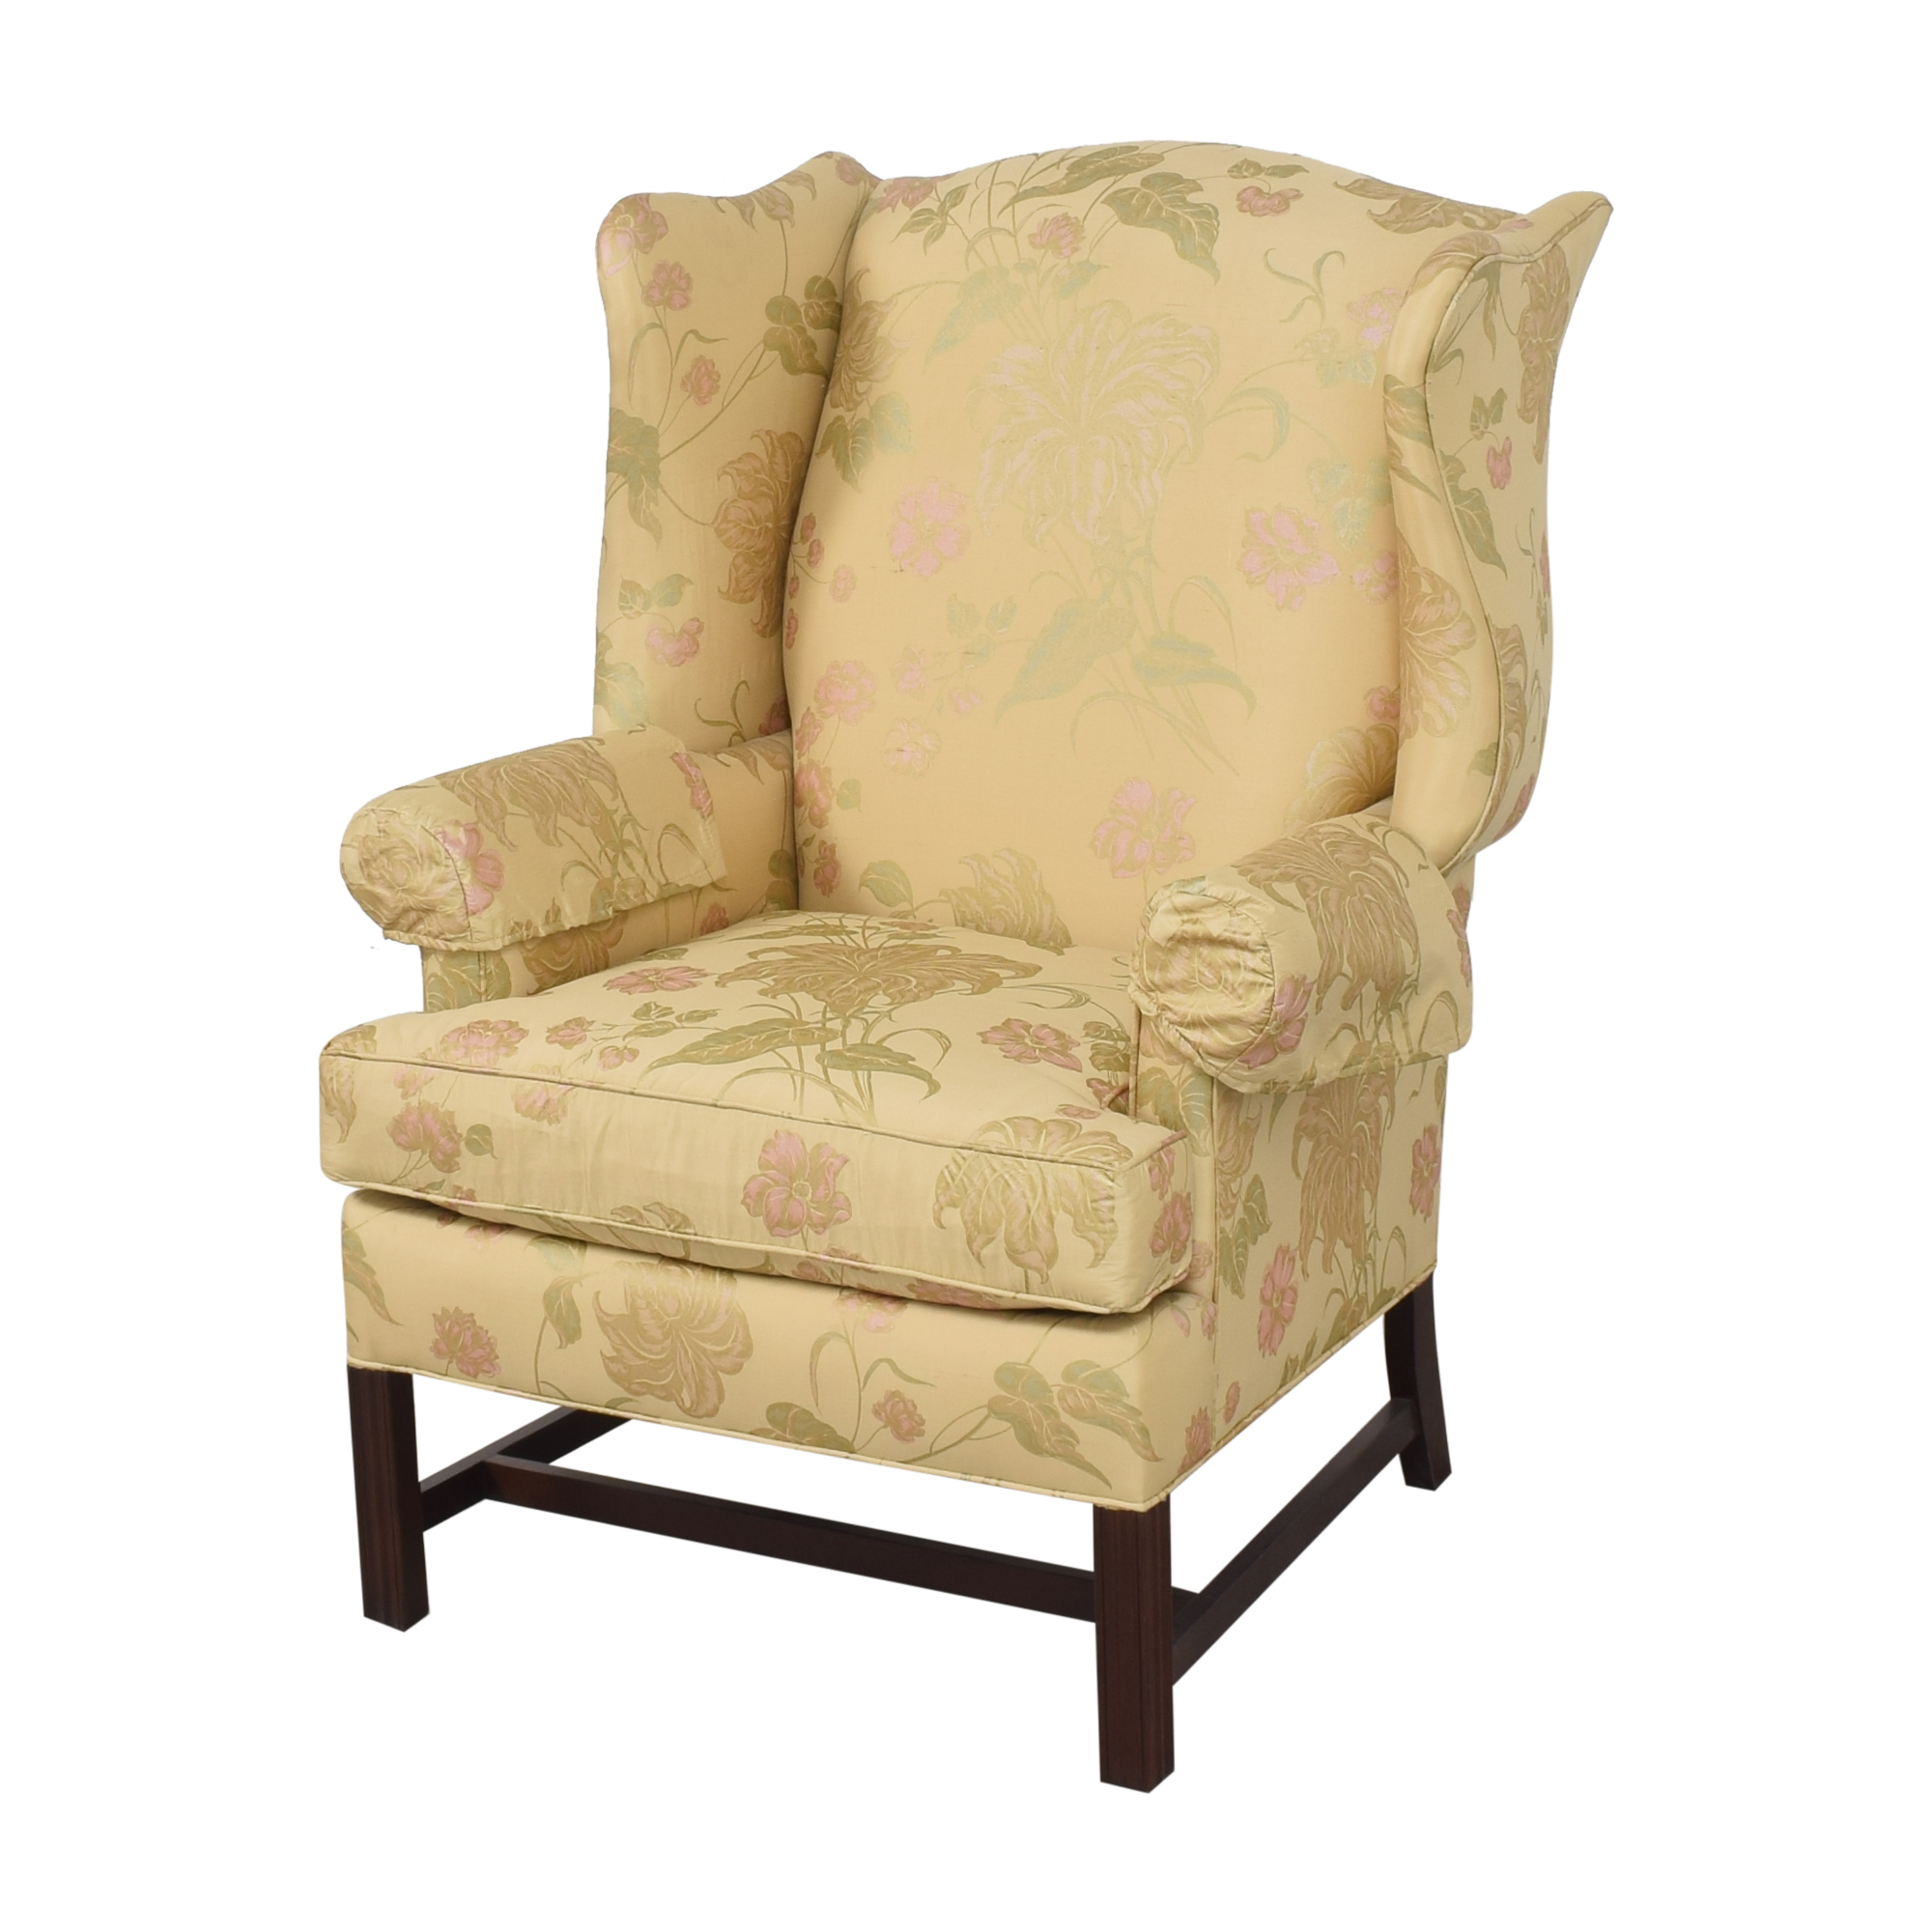 CR Laine CR Laine Upholstered Accent Chair coupon